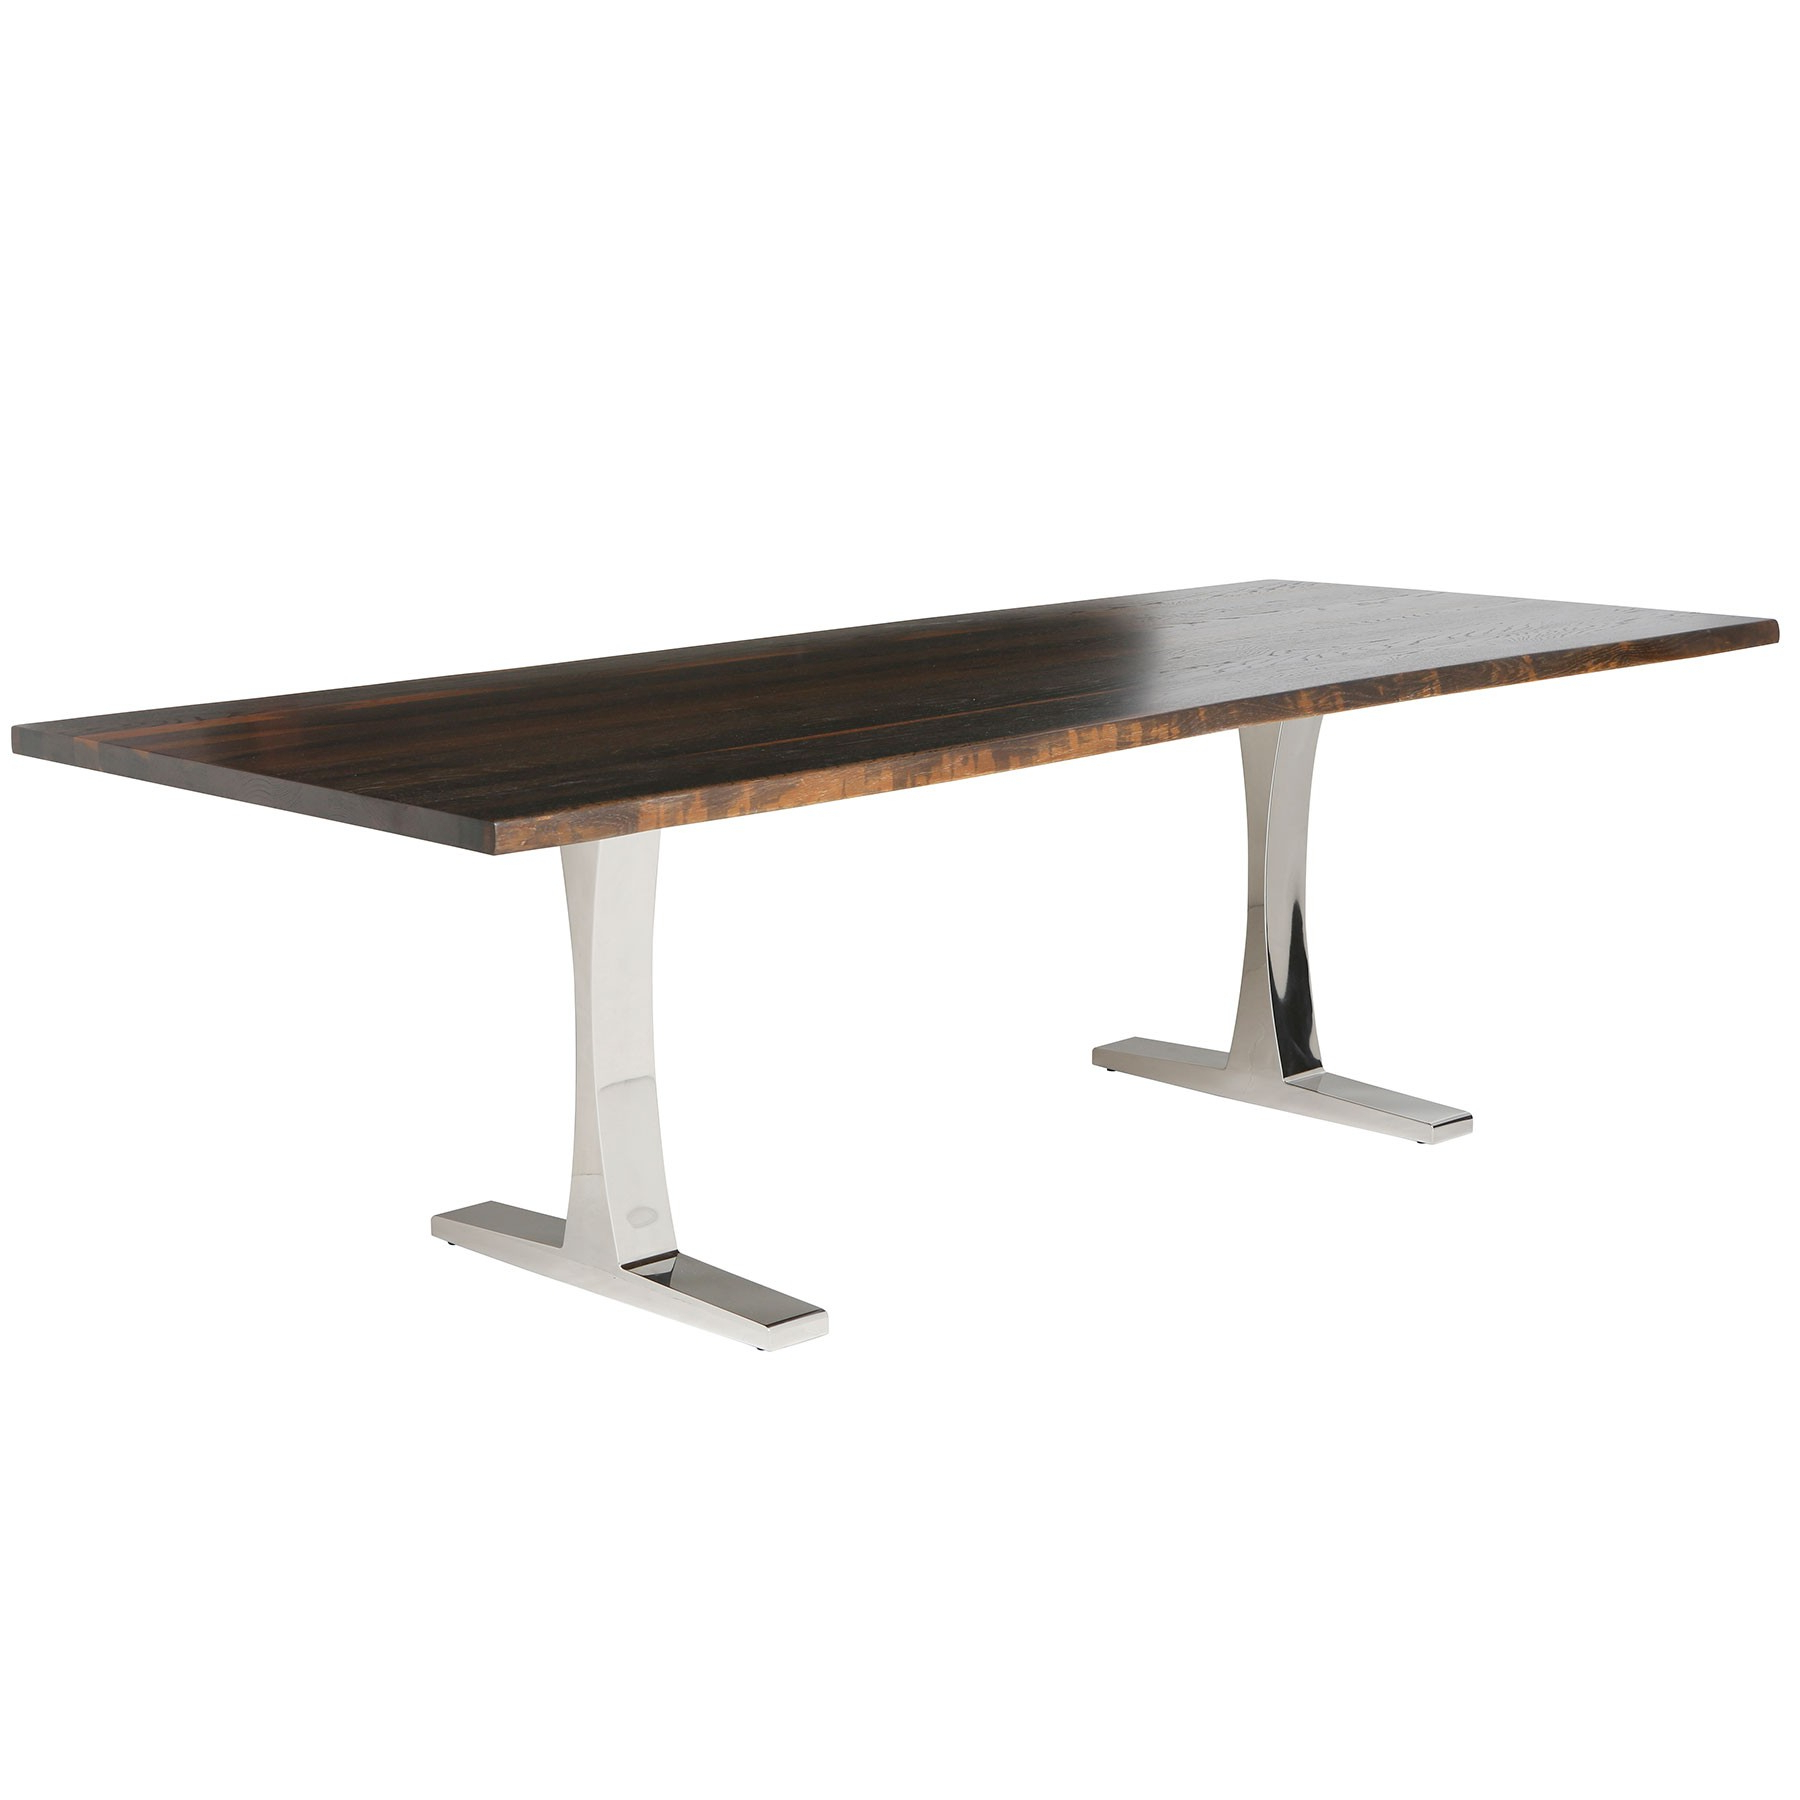 Toulouse Dining Table – Seared Oak / Stainless Pertaining To Best And Newest Dining Tables In Seared Oak (View 2 of 25)